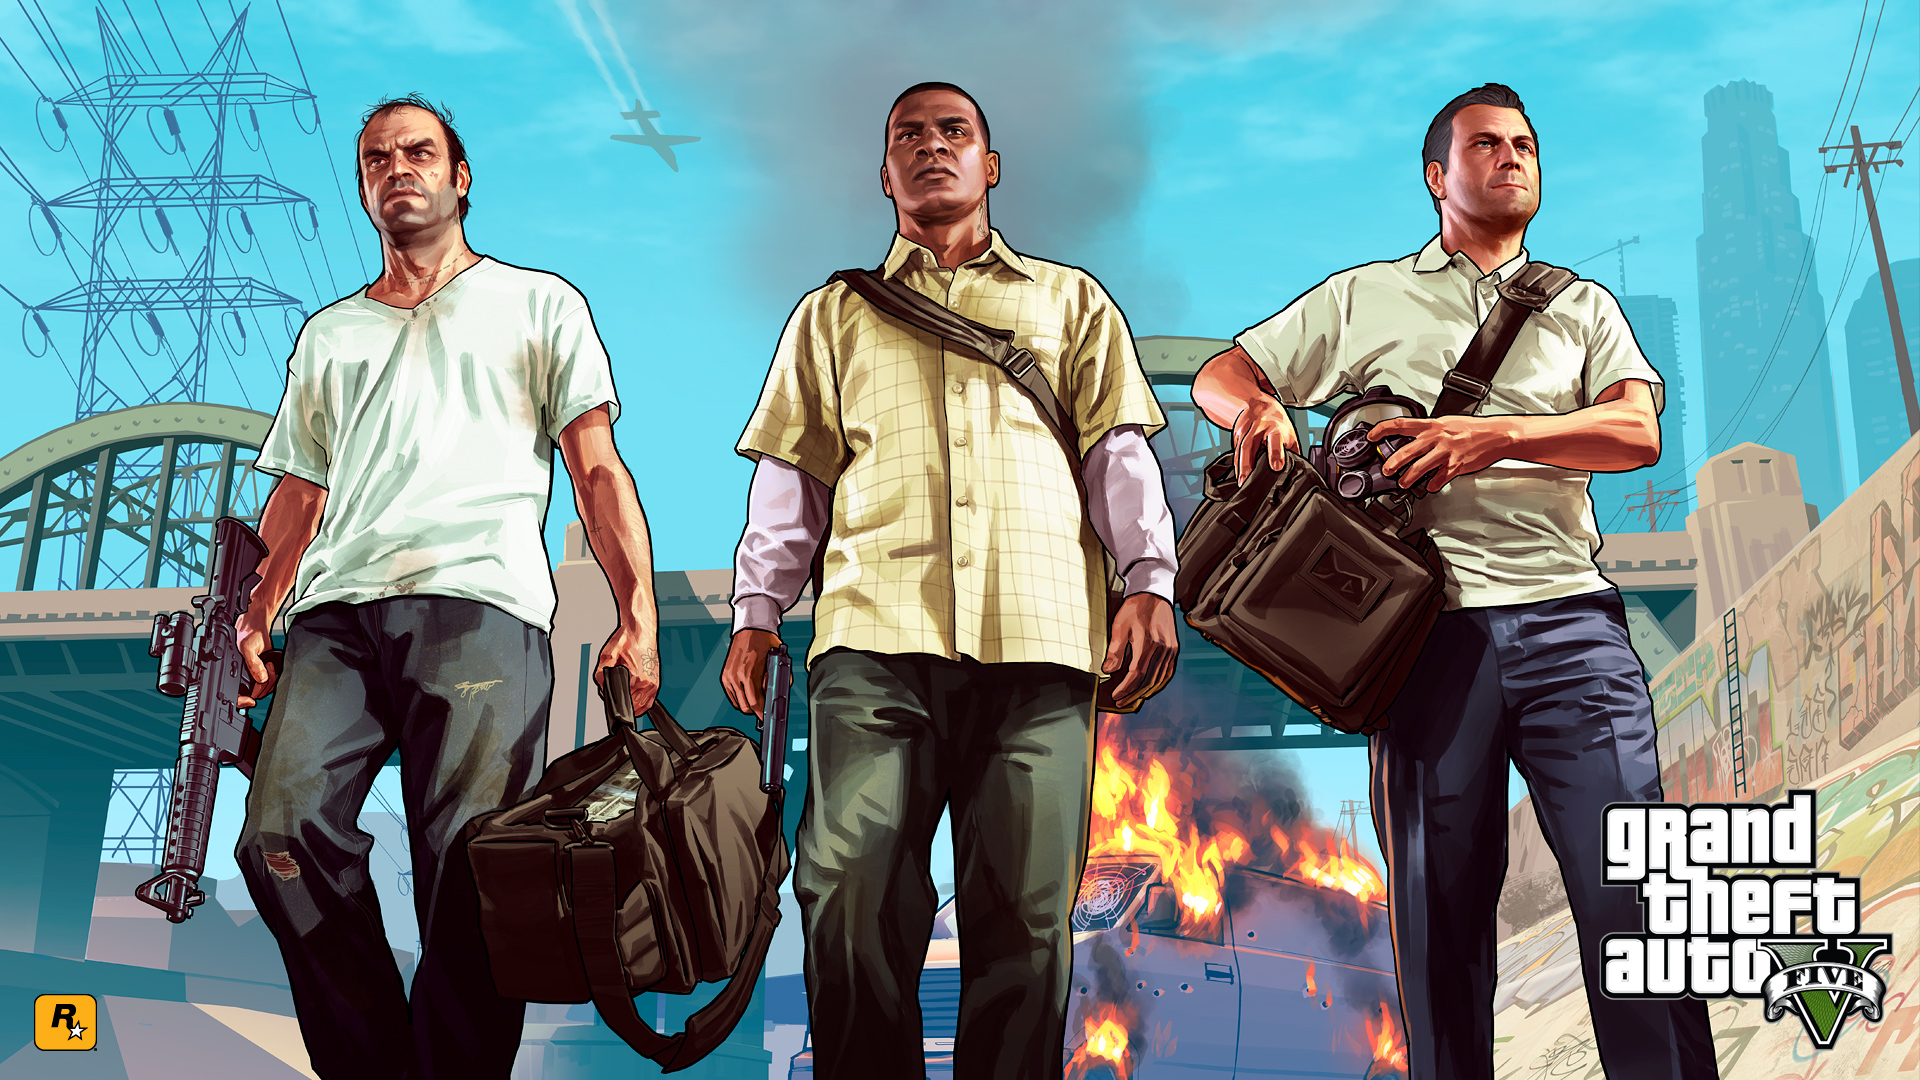 Grand Theft Auto Wallpaper Desktop 1080p